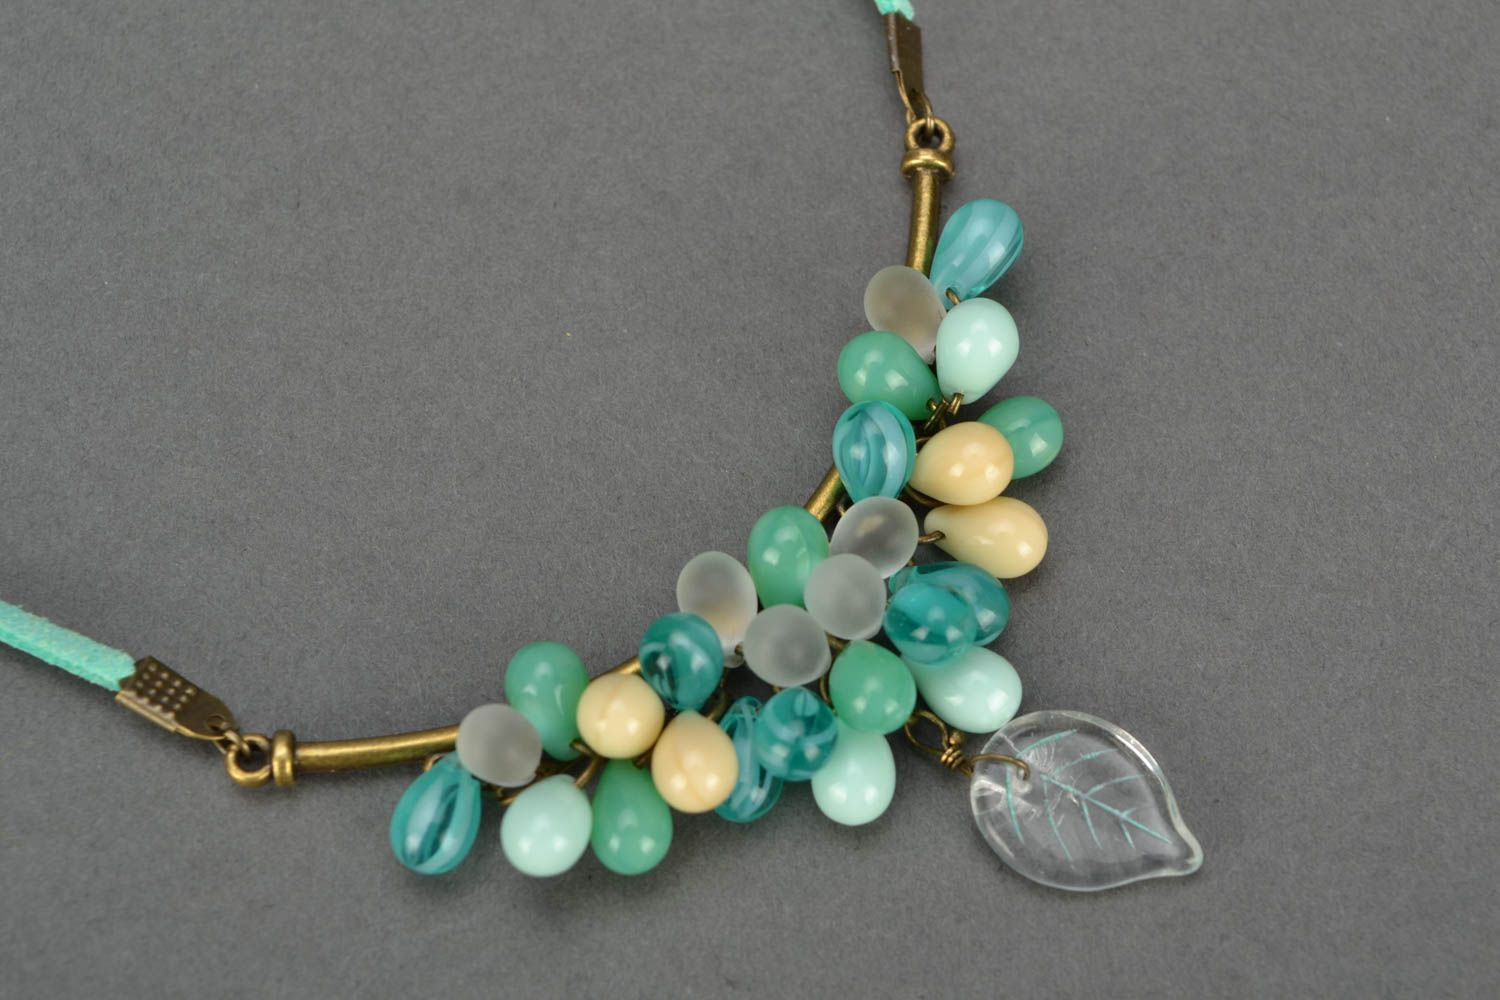 Beautiful homemade suede cord necklace with glass beads unusual design photo 3